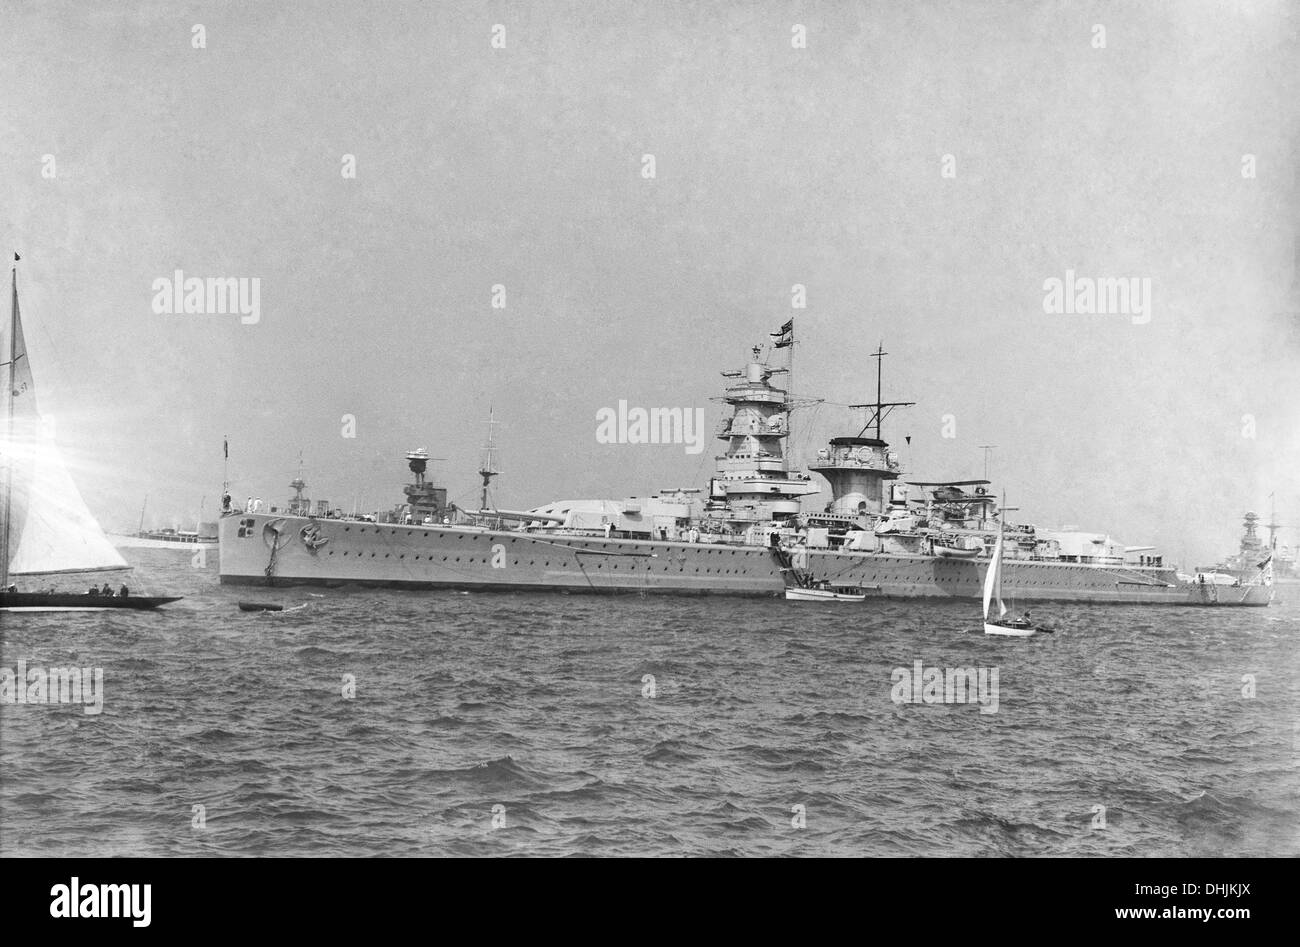 German pocket battleship 'Admiral Graf Spee', 1937. The 'Graf Spee' attending the Fleet Review for the coronation of King George - Stock Image